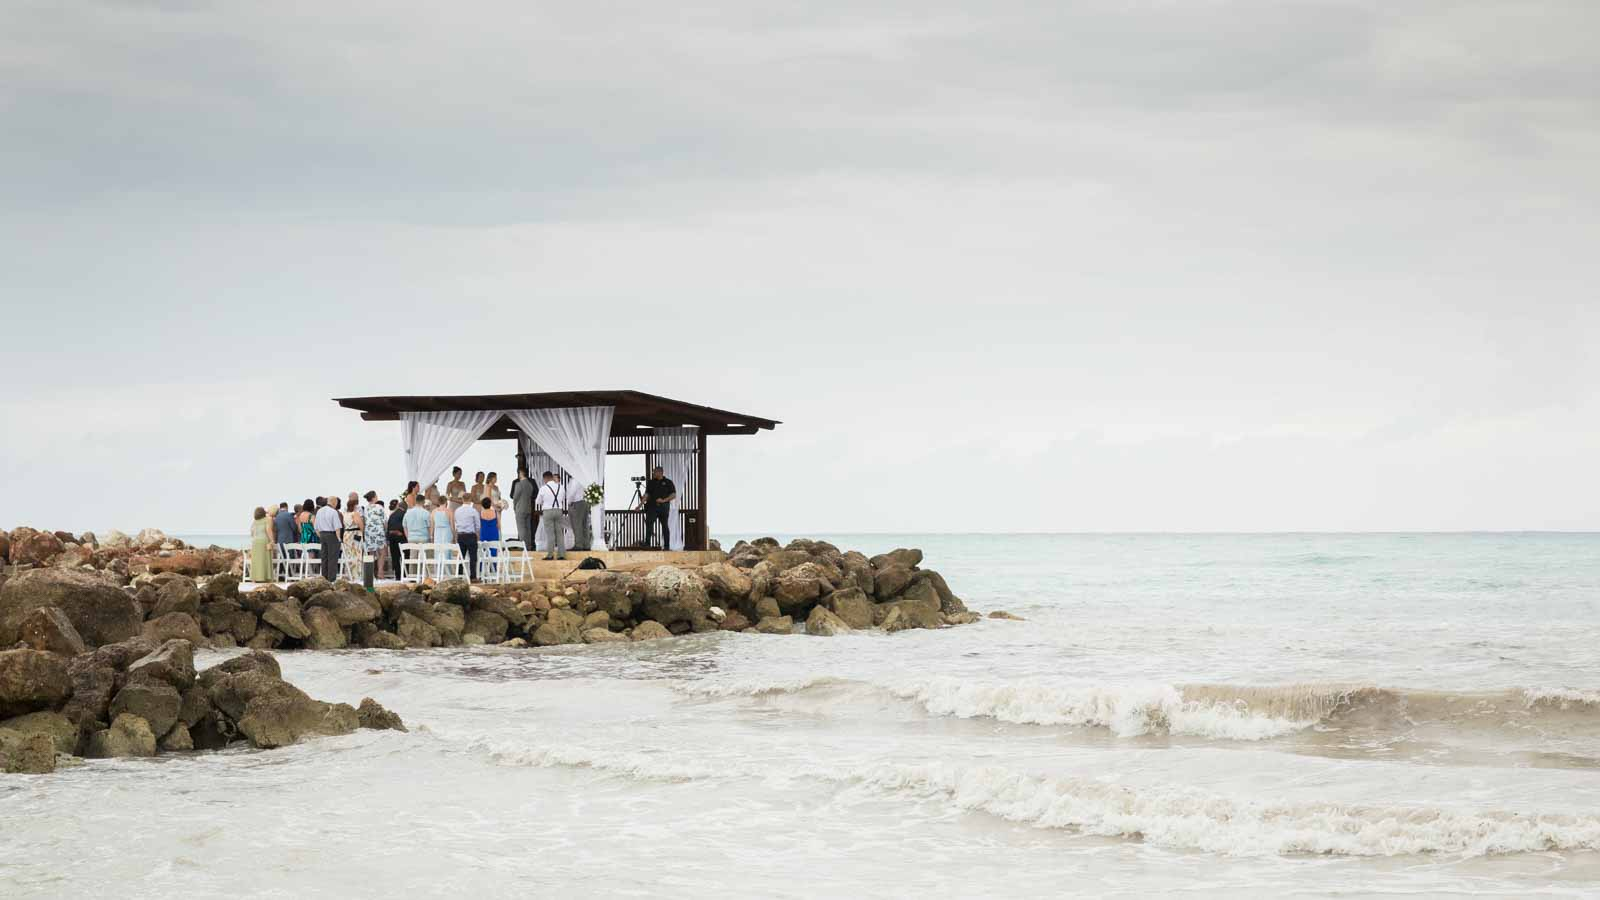 Outdoor wedding ceremony overlooking the ocean